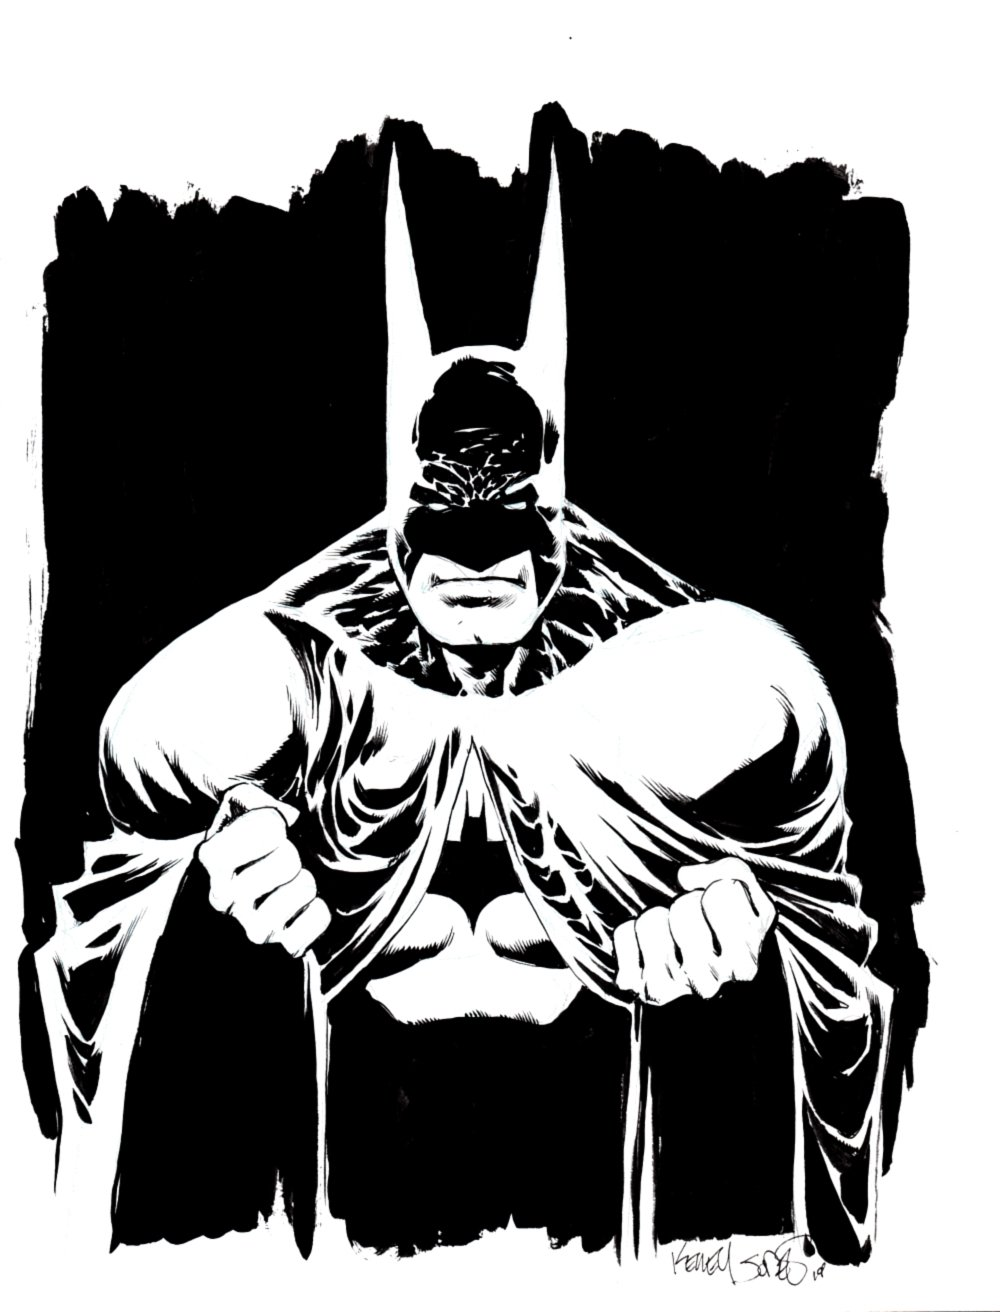 Batman Pinup (SOLD LIVE ON 'DUELING DEALERS OF COMIC ART' EPISODE #7 PODCAST ON 3-10-2021 (RE-WATCH OUR LIVE ART SELLING PODCAST HERE!)